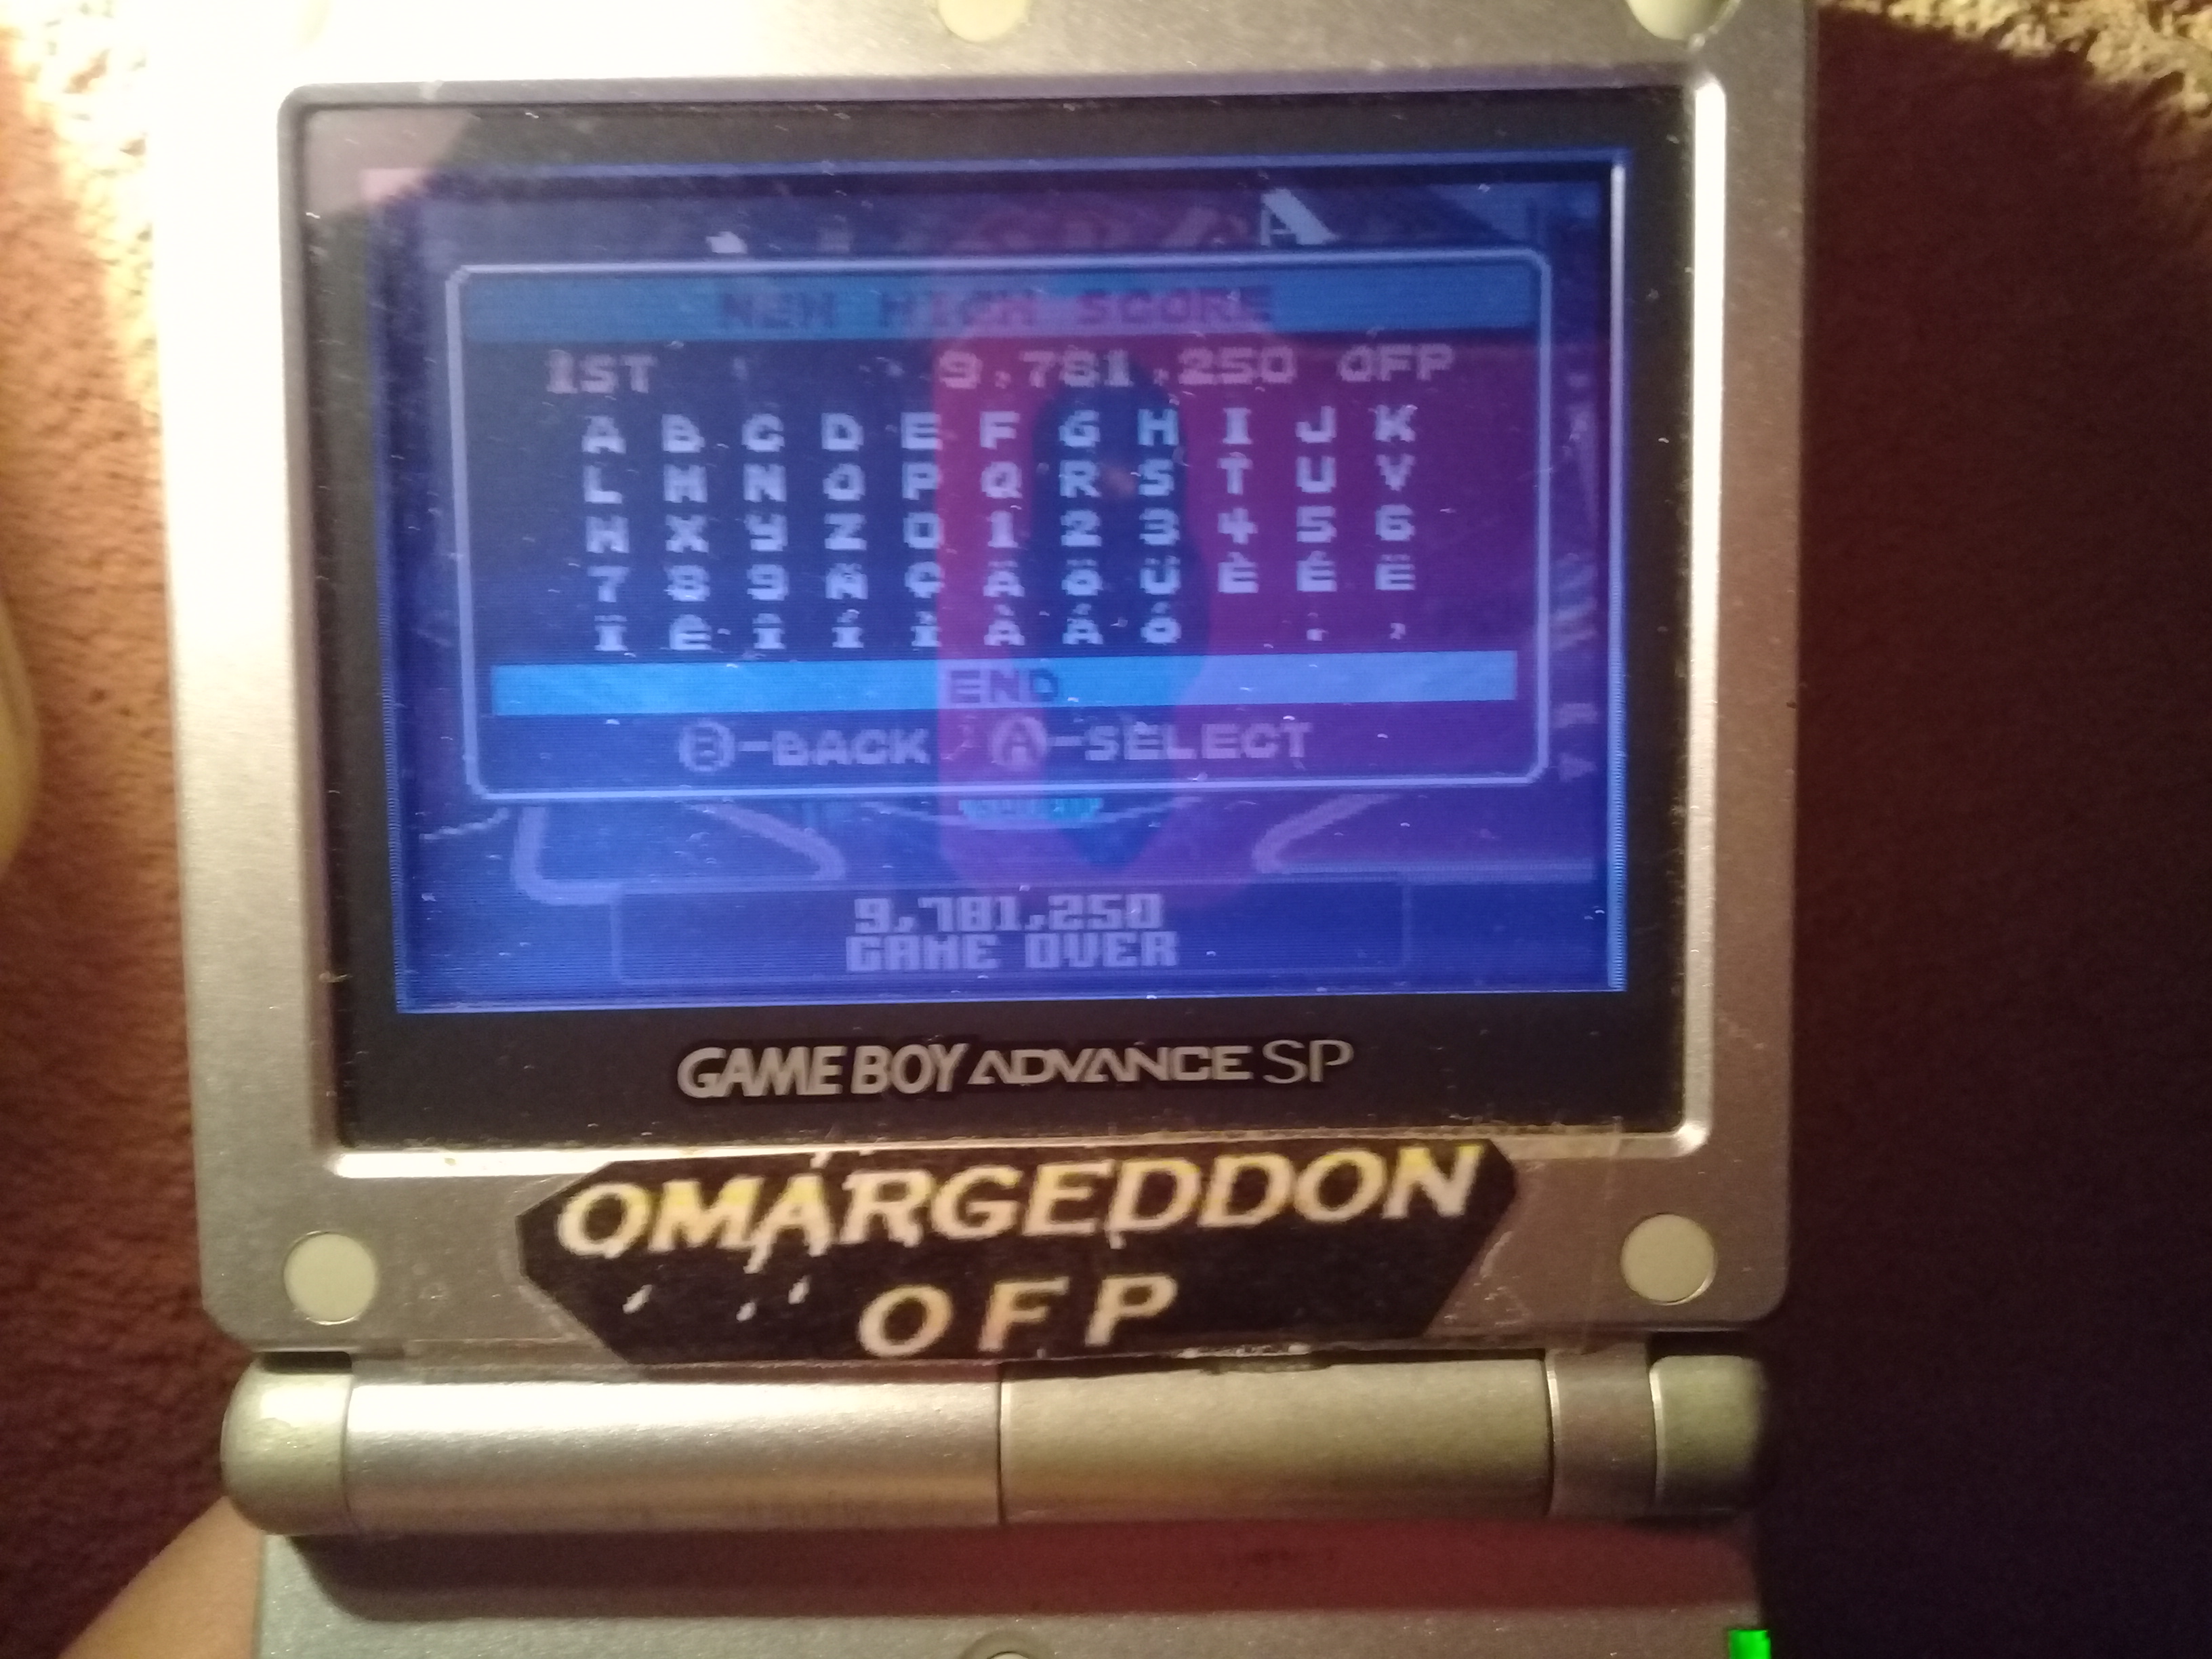 omargeddon: Pinball Advance: Jailbreak [3 Balls] [Hard] (GBA) 9,781,250 points on 2019-10-11 22:17:12